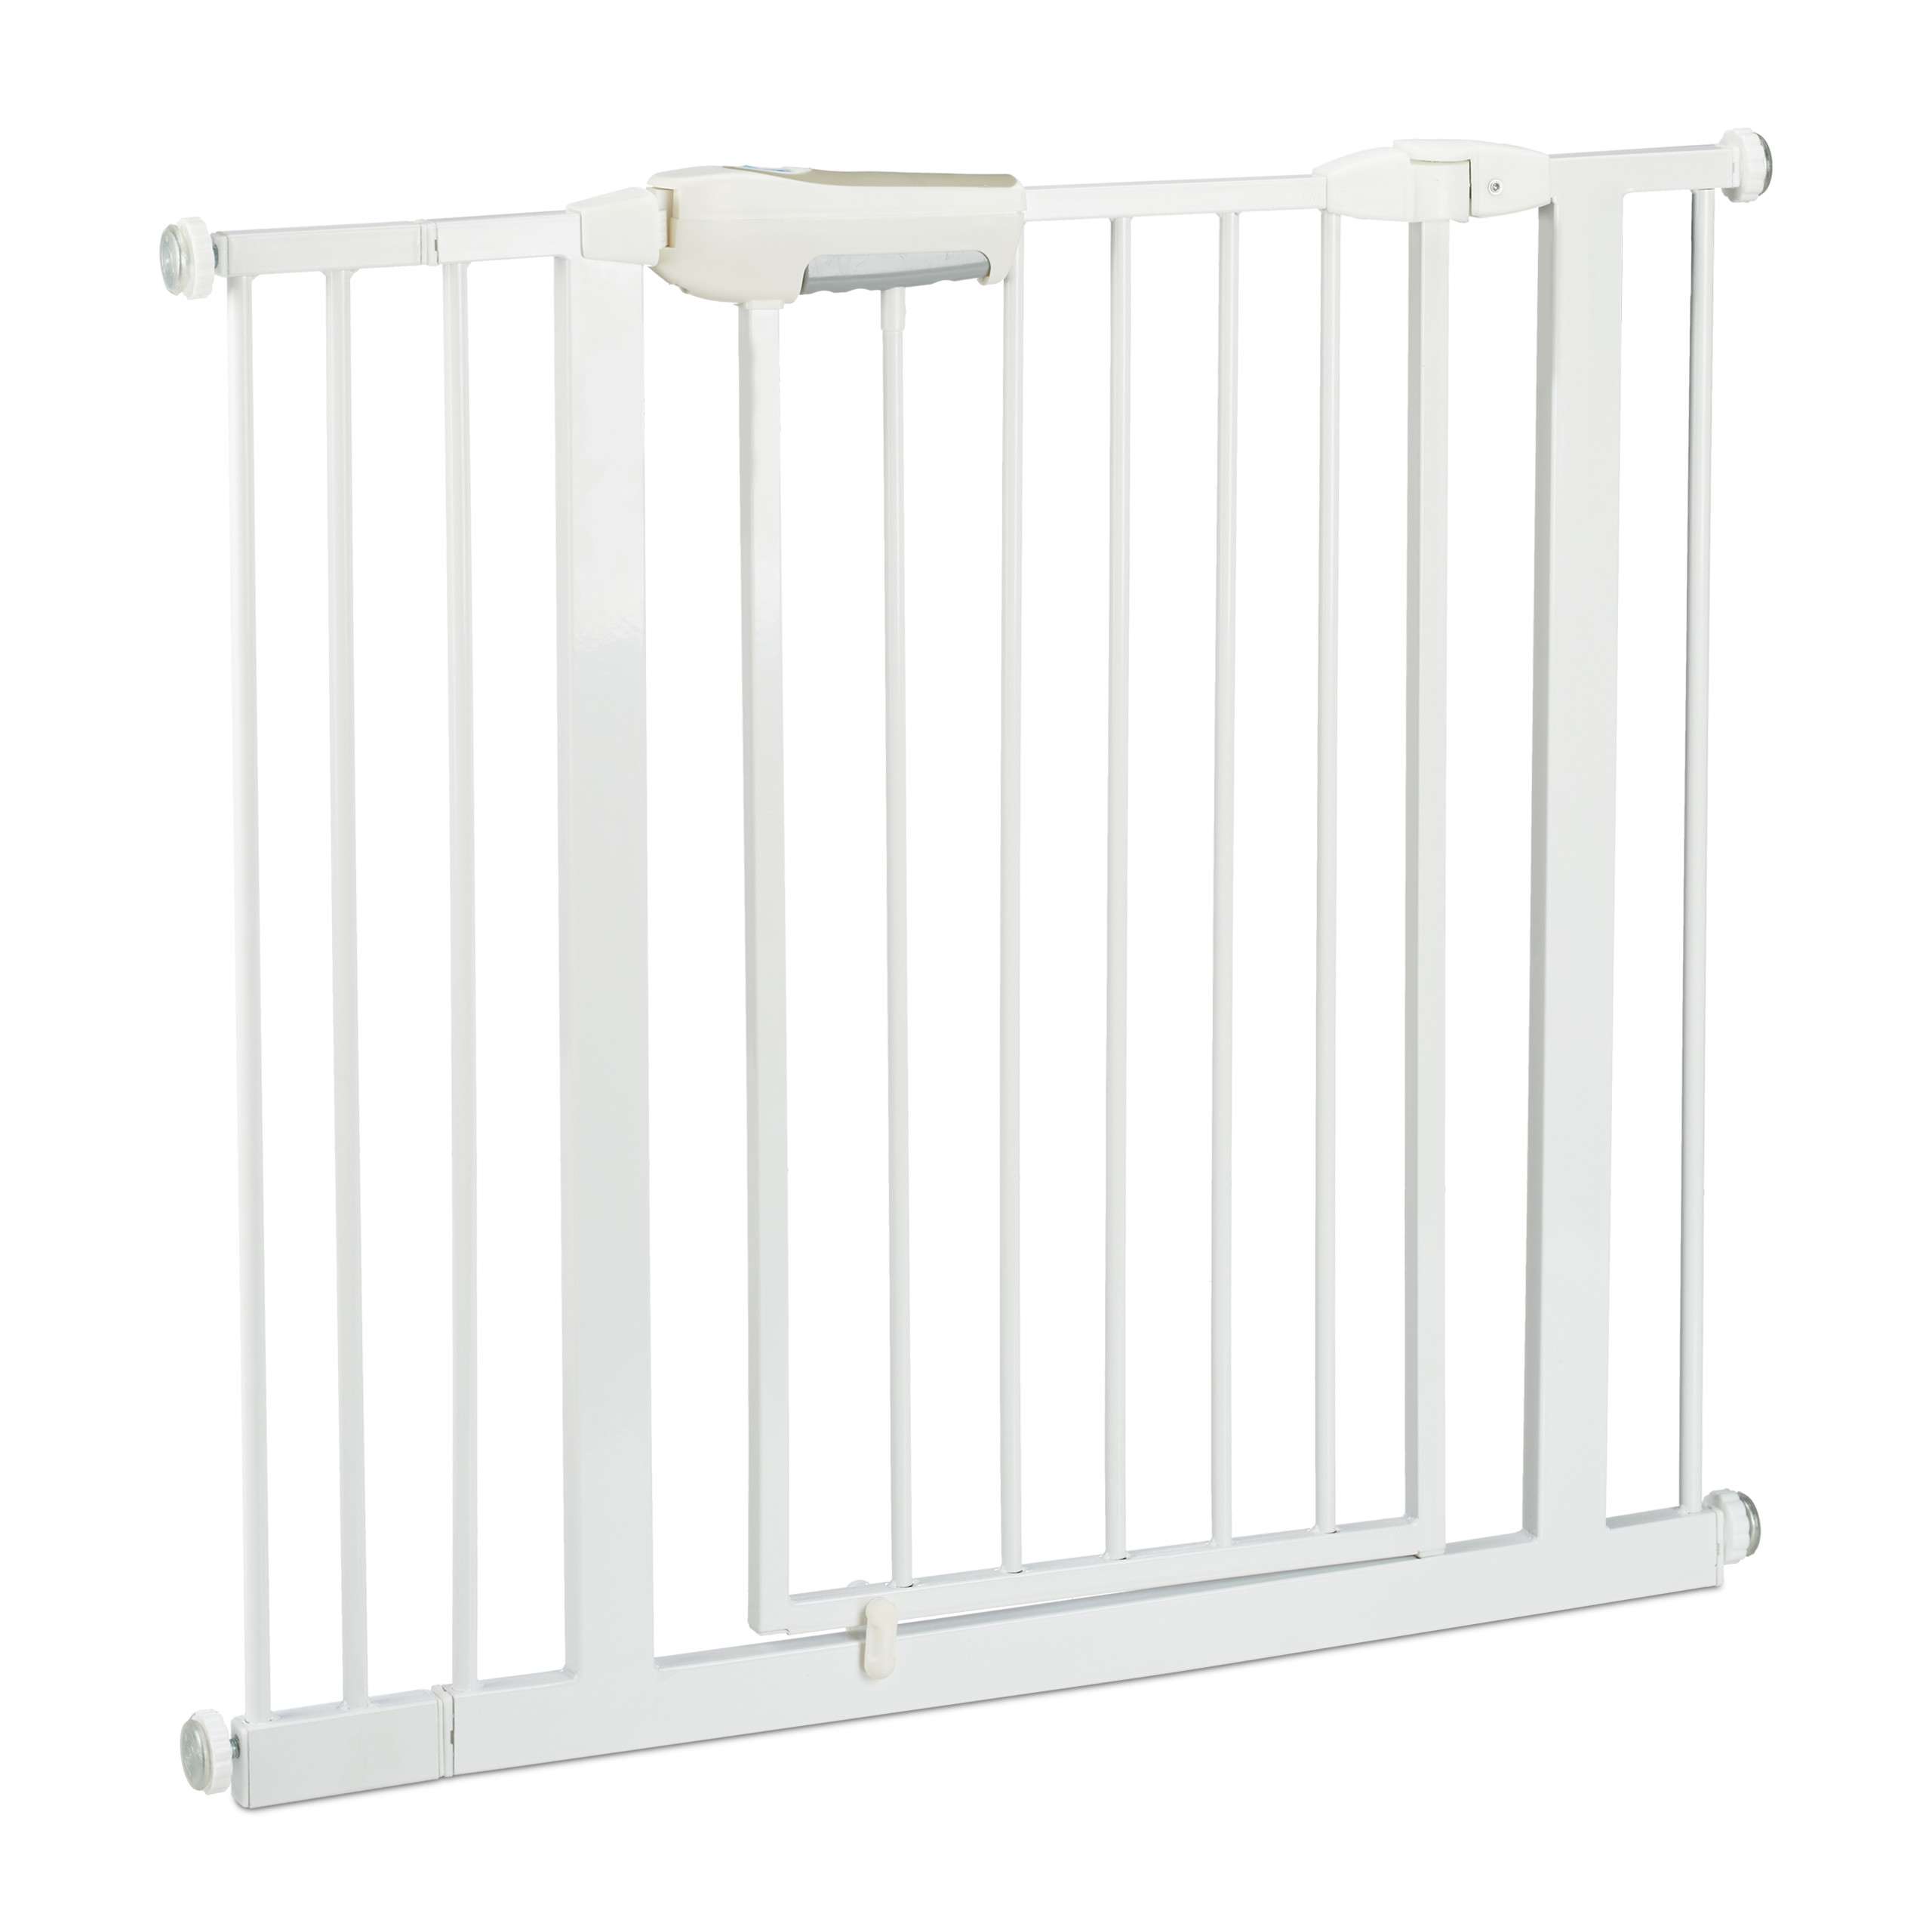 Pressure-Fit-Baby-Safety-Gate-Extension-Security-Barrier-for-Stairs-and-Doors thumbnail 17